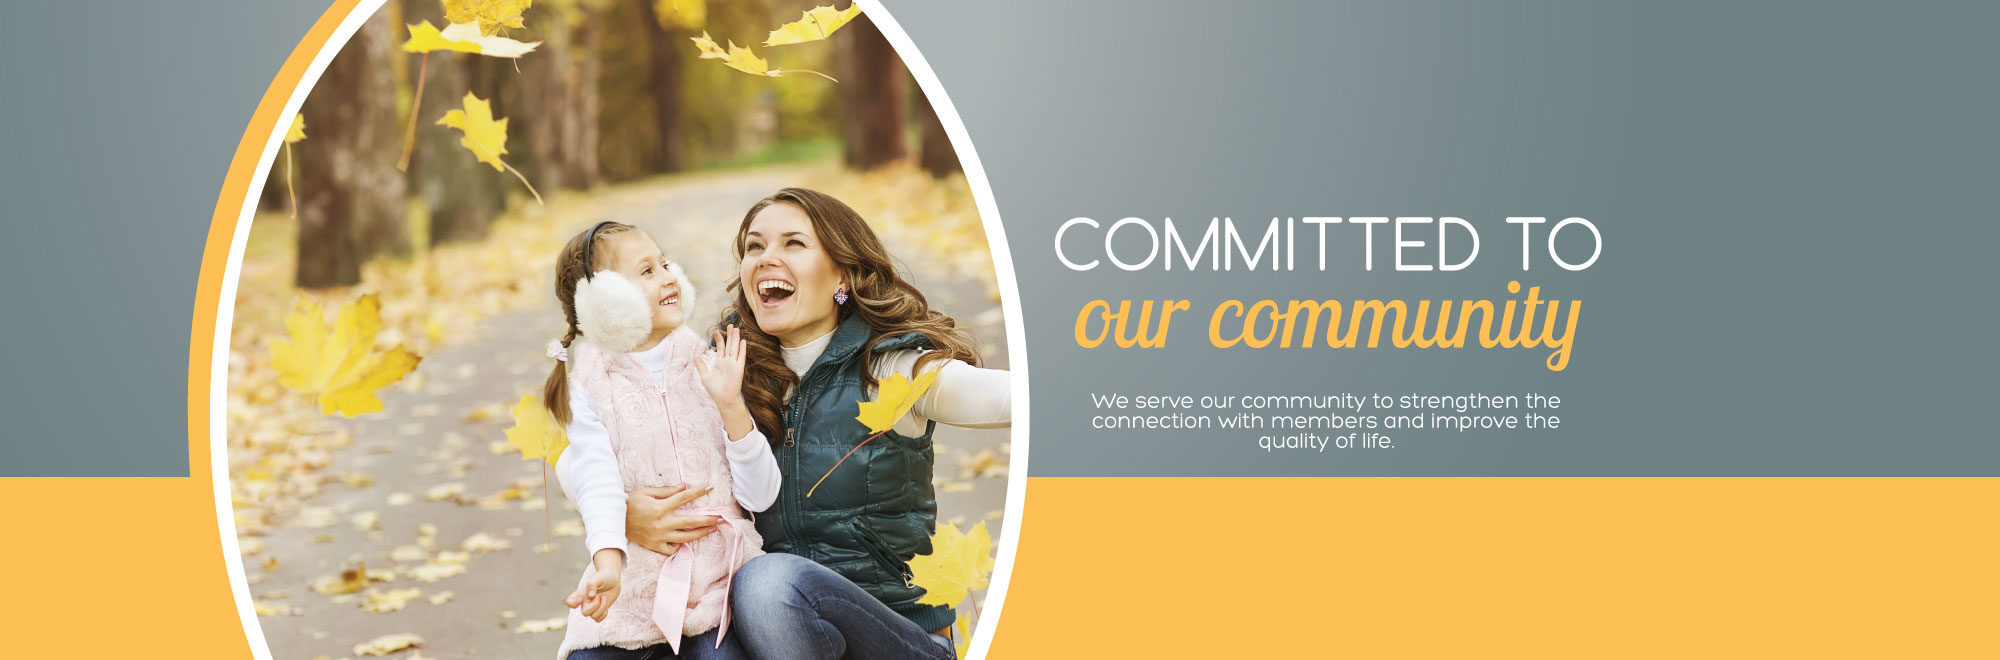 We serve our community to strengthen the connection with members and improve the quality of life